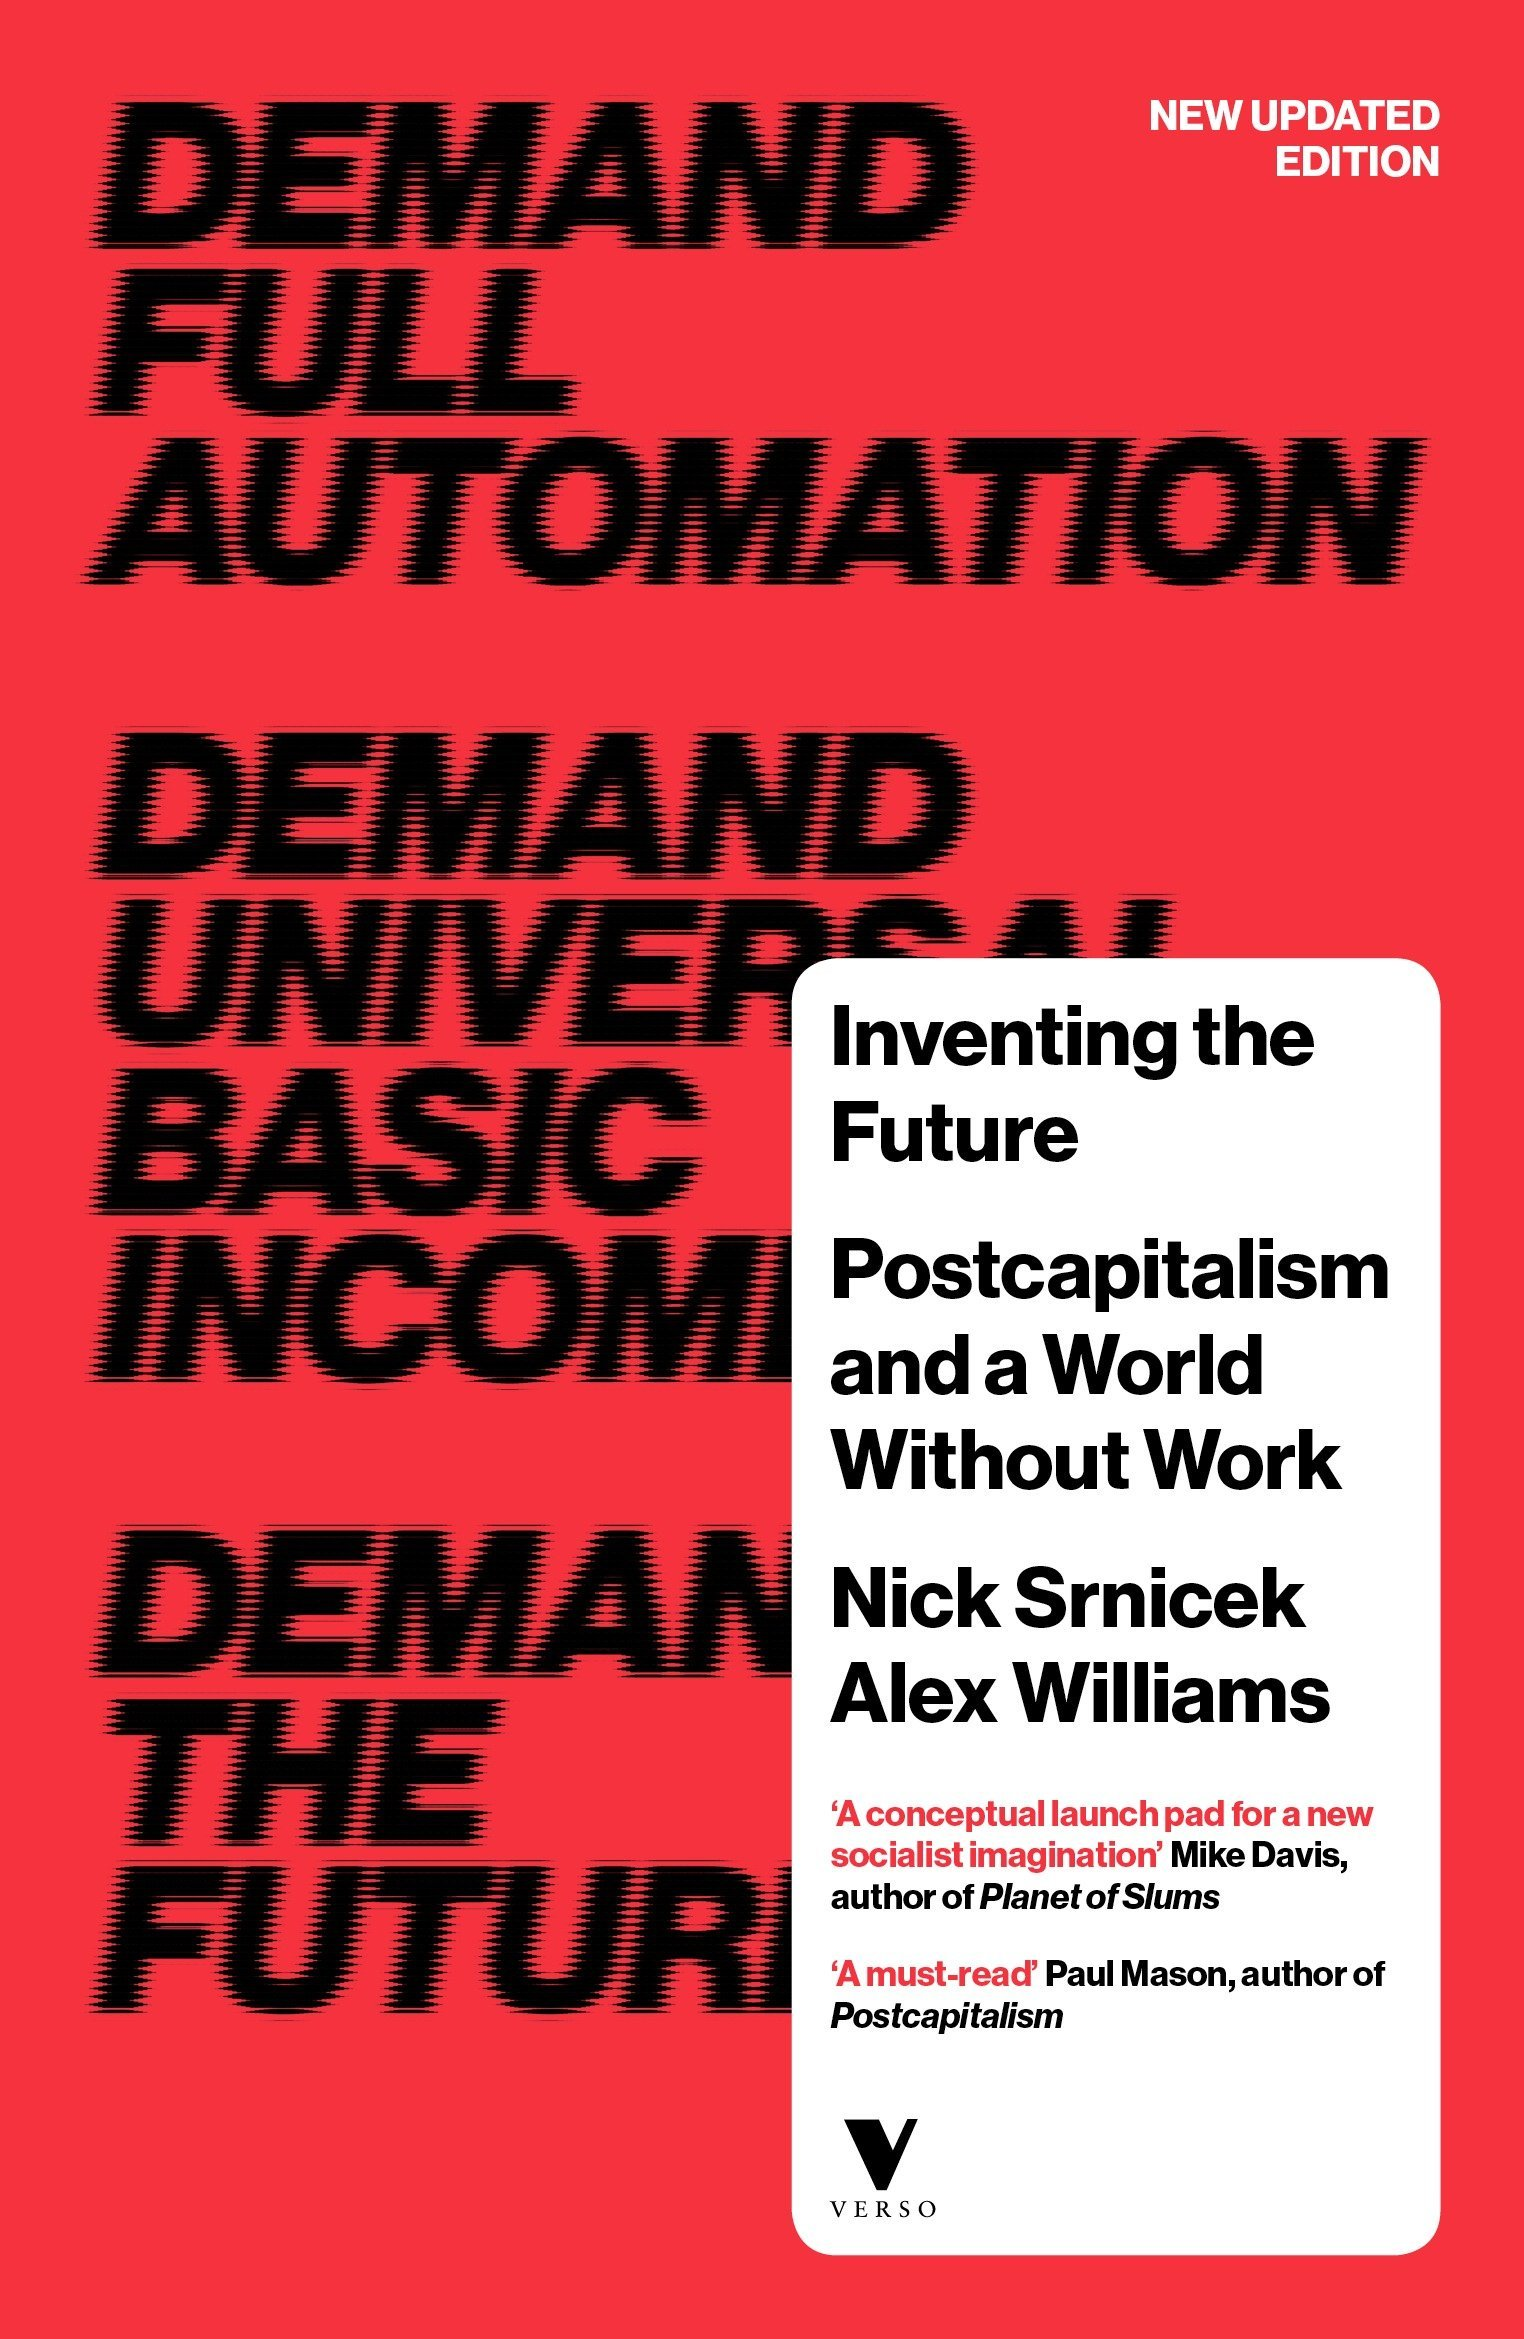 Buy Inventing the Future (revised and updated edition): Postcapitalism and a  World Without Work Book Online at Low Prices in India | Inventing the Future  (revised and updated edition): Postcapitalism and a